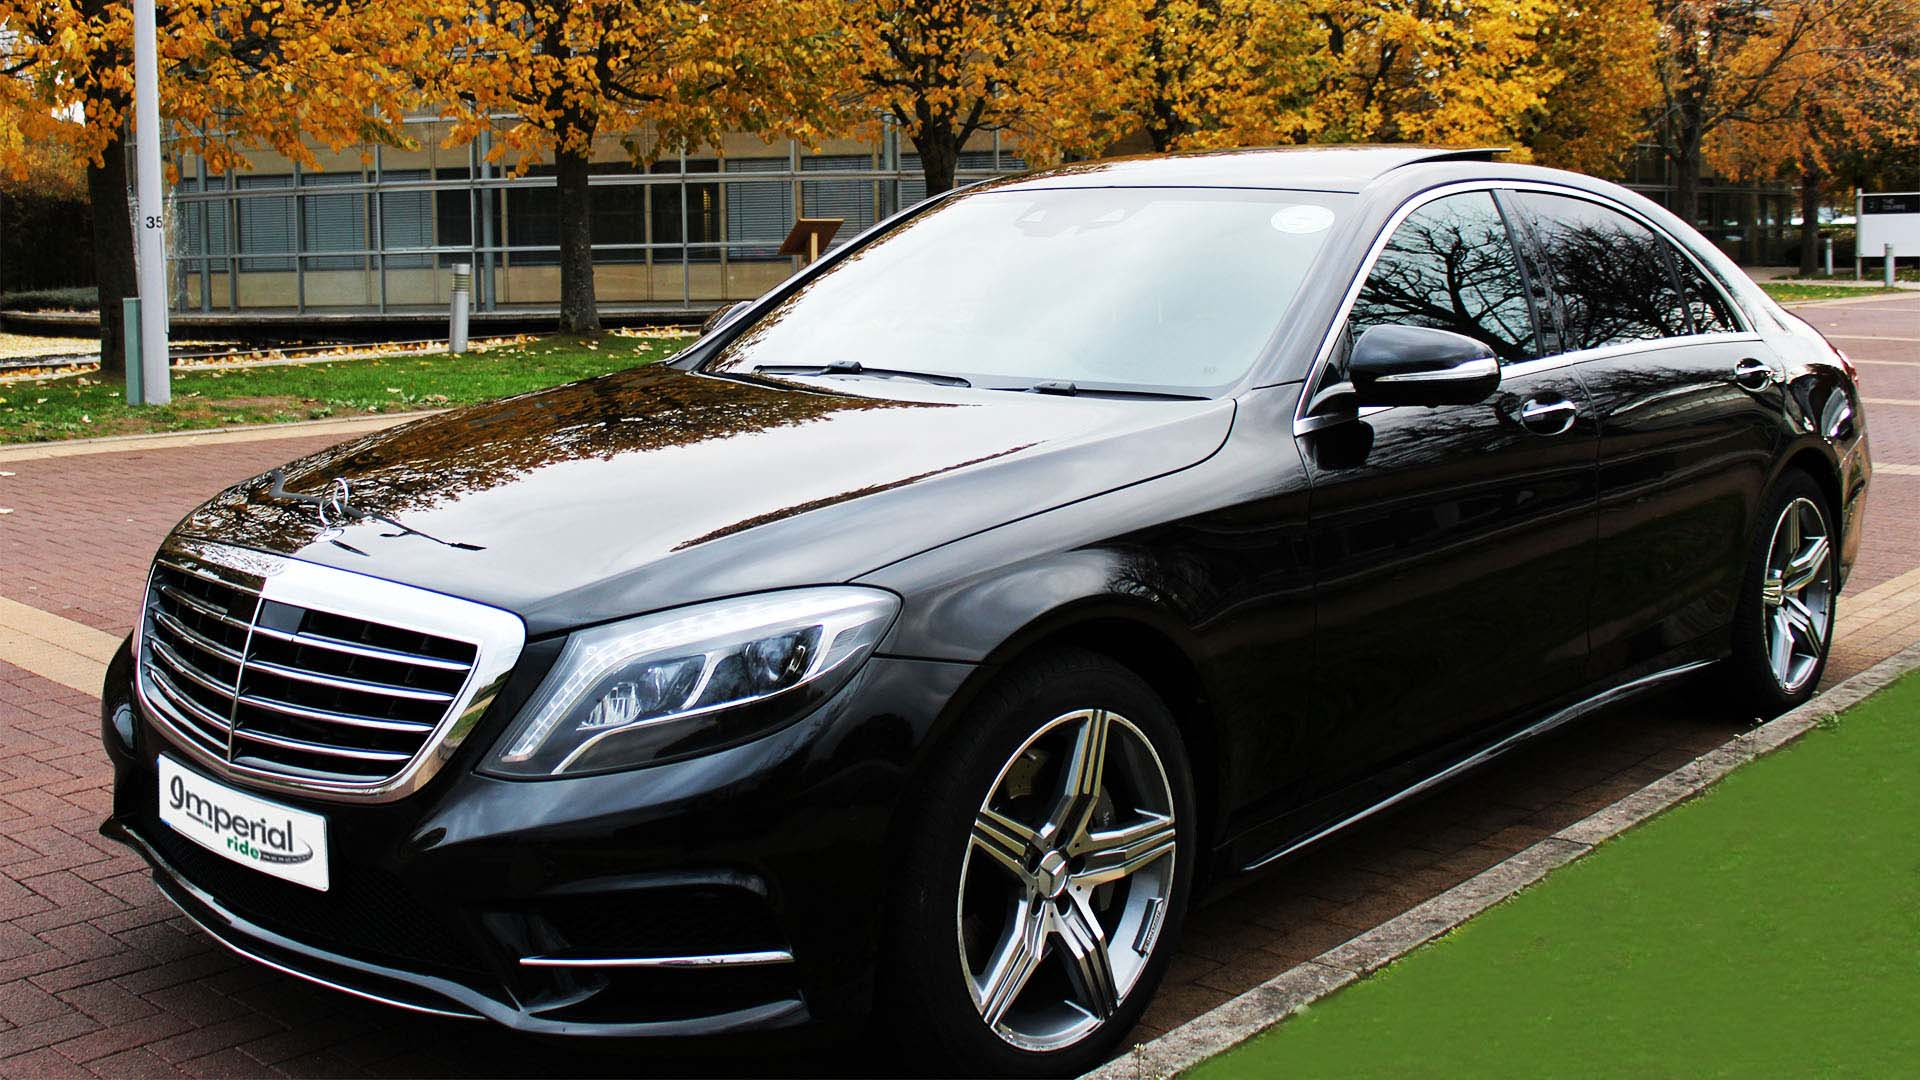 s-class-imperial-ride